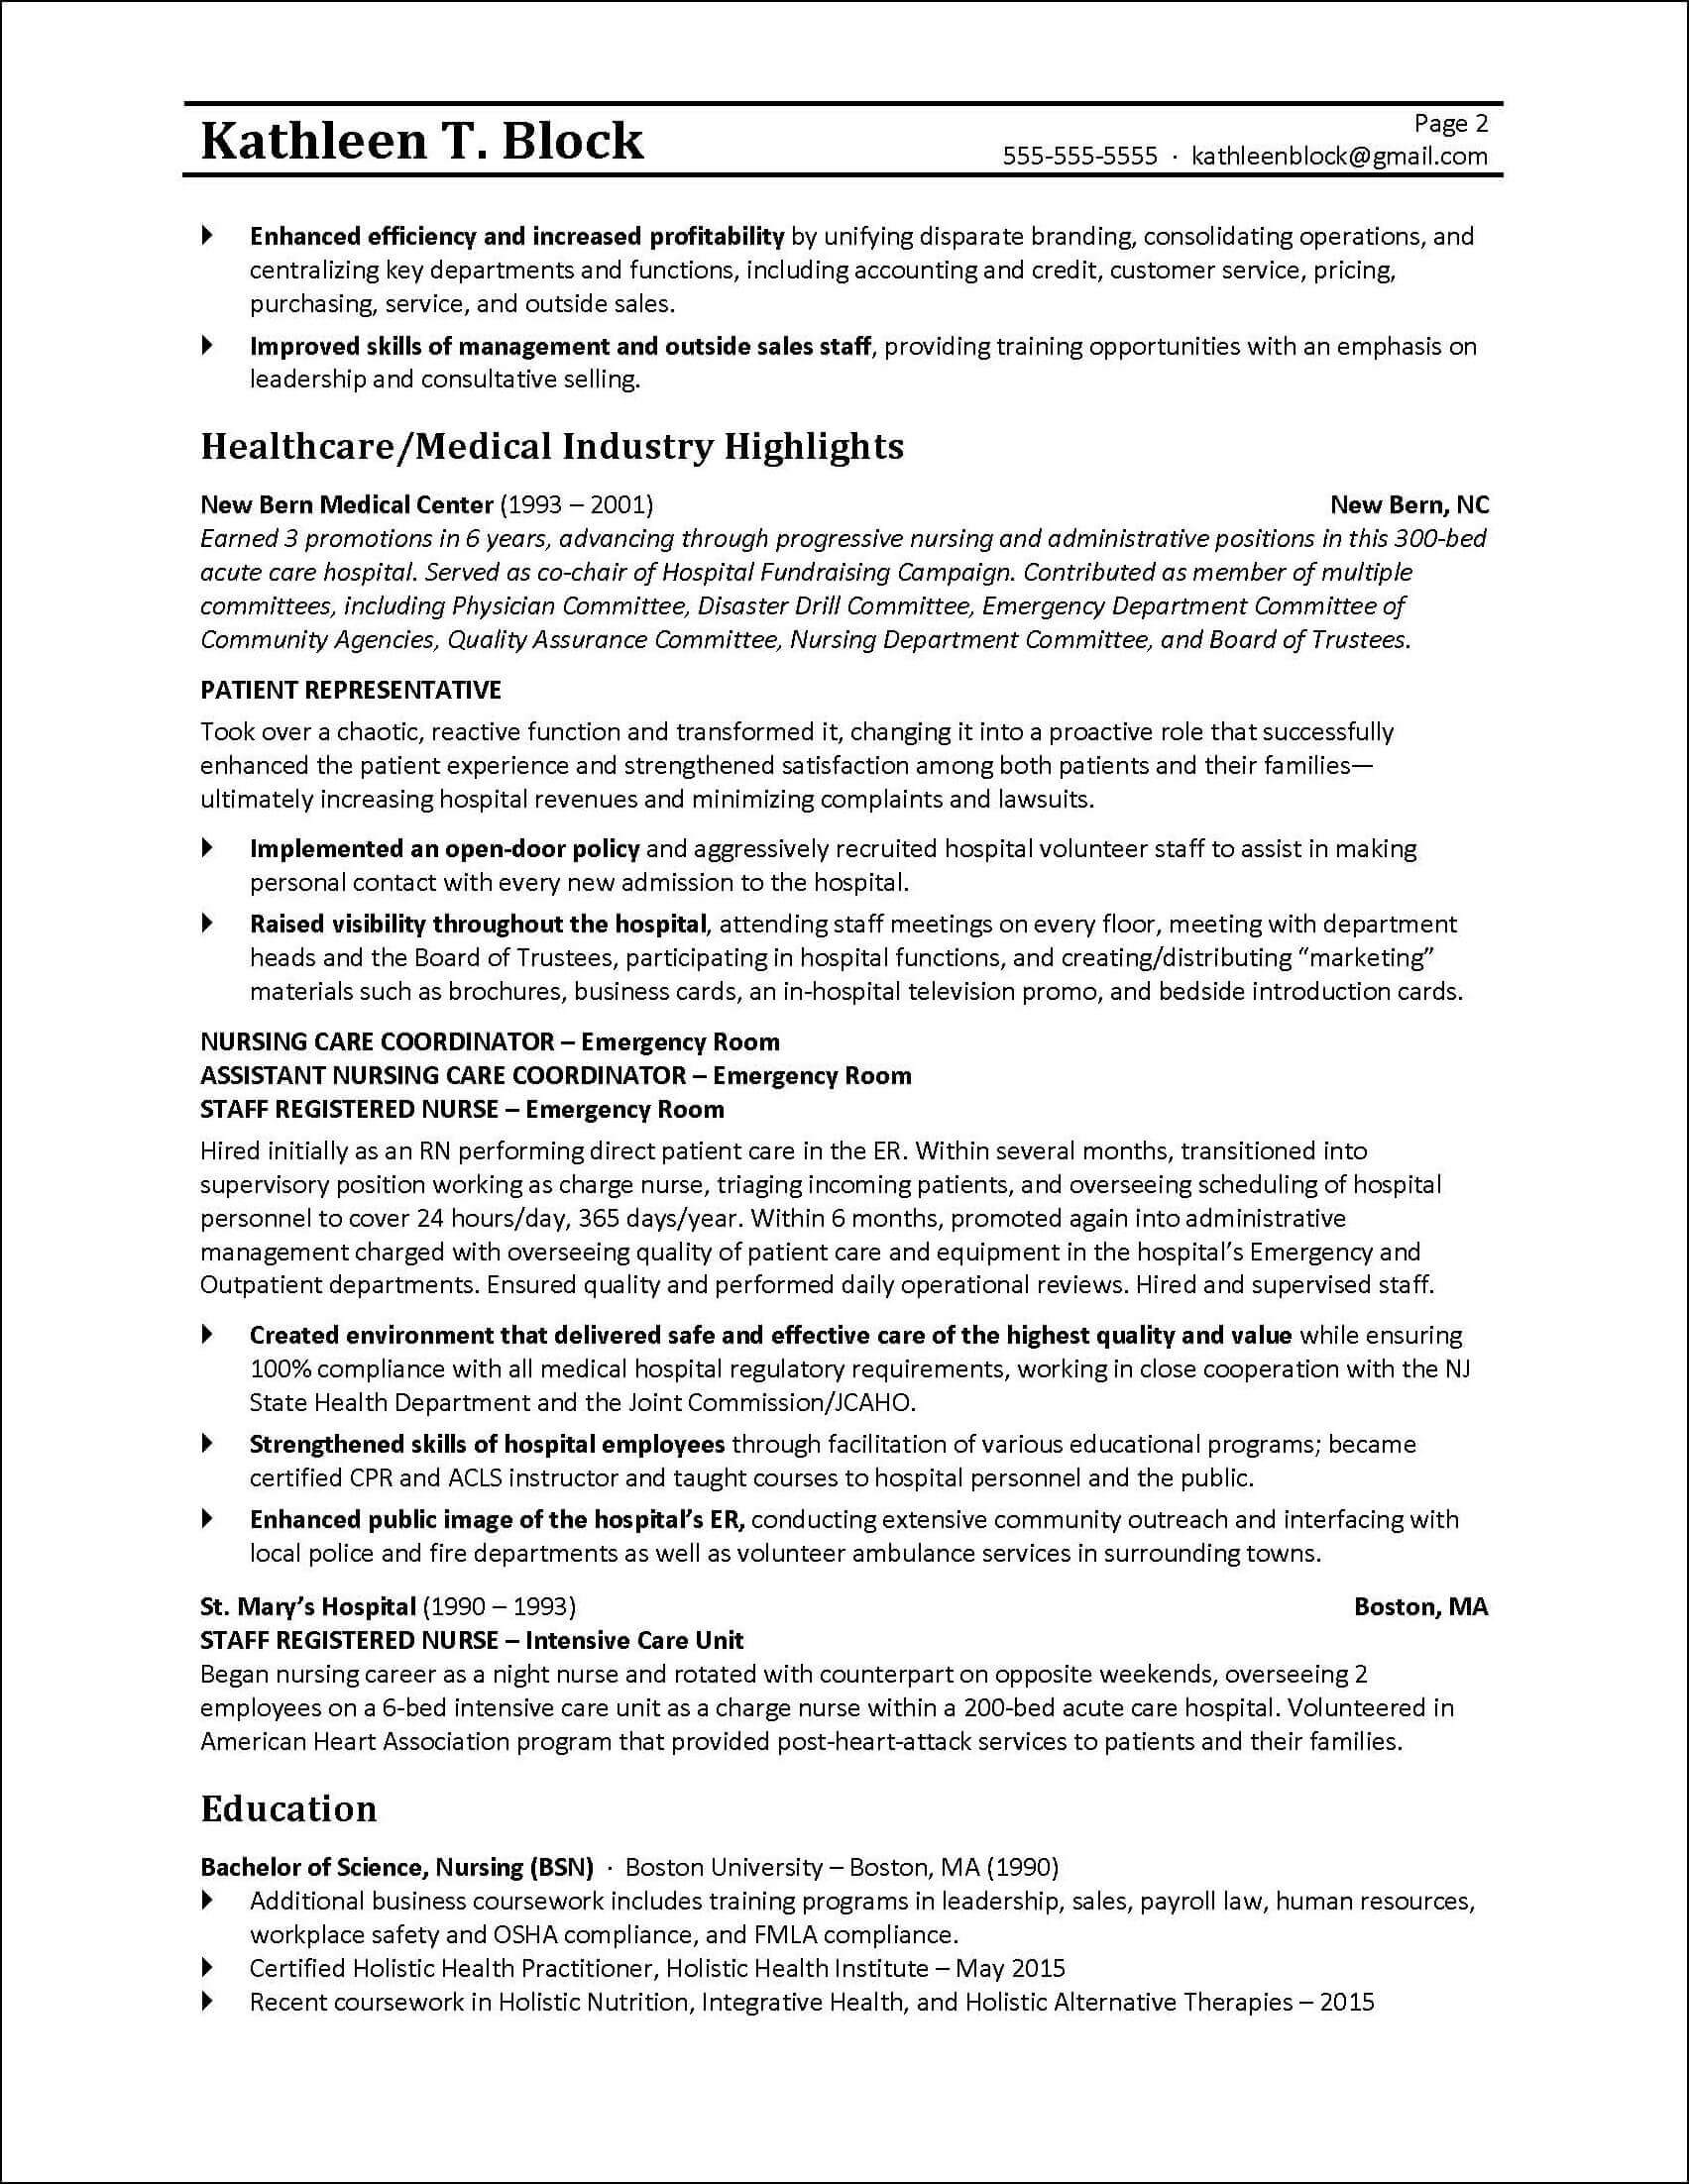 Resume Tips: 2nd Page Of A Resume Written For A Former Business Owner  Tips For Making A Resume